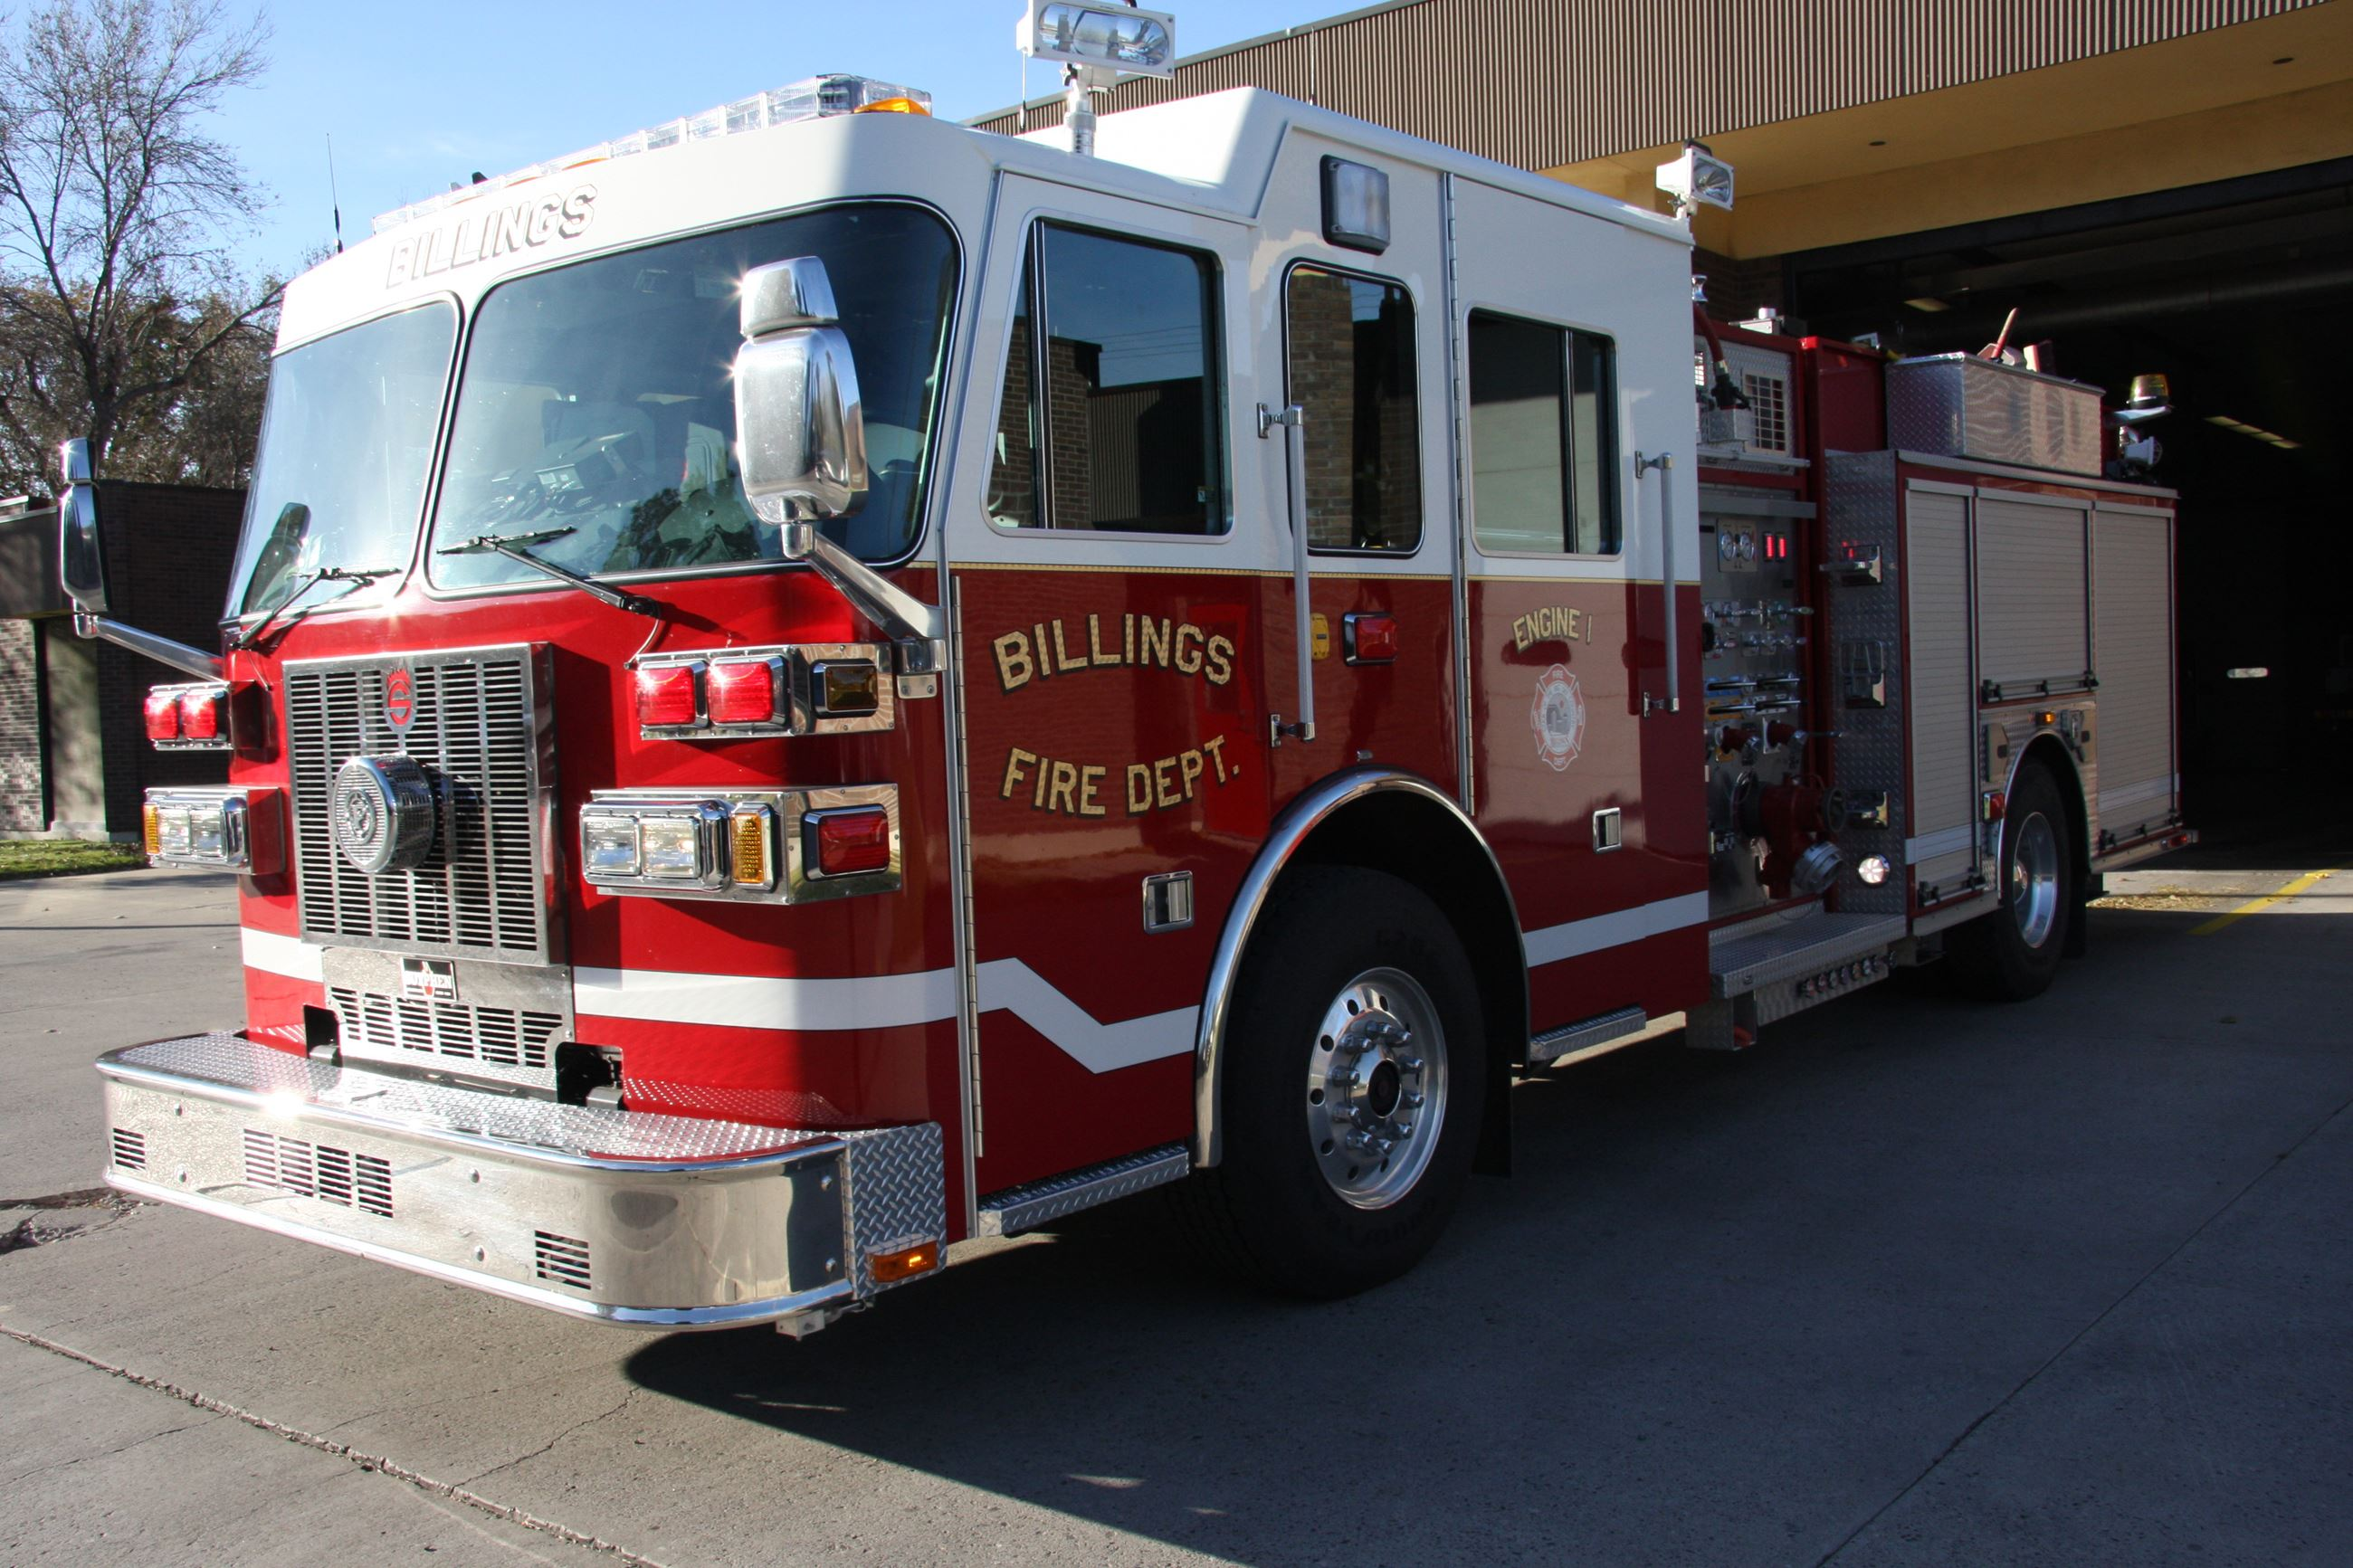 Fire department city of billings mt official website - Does fire department fill swimming pools ...